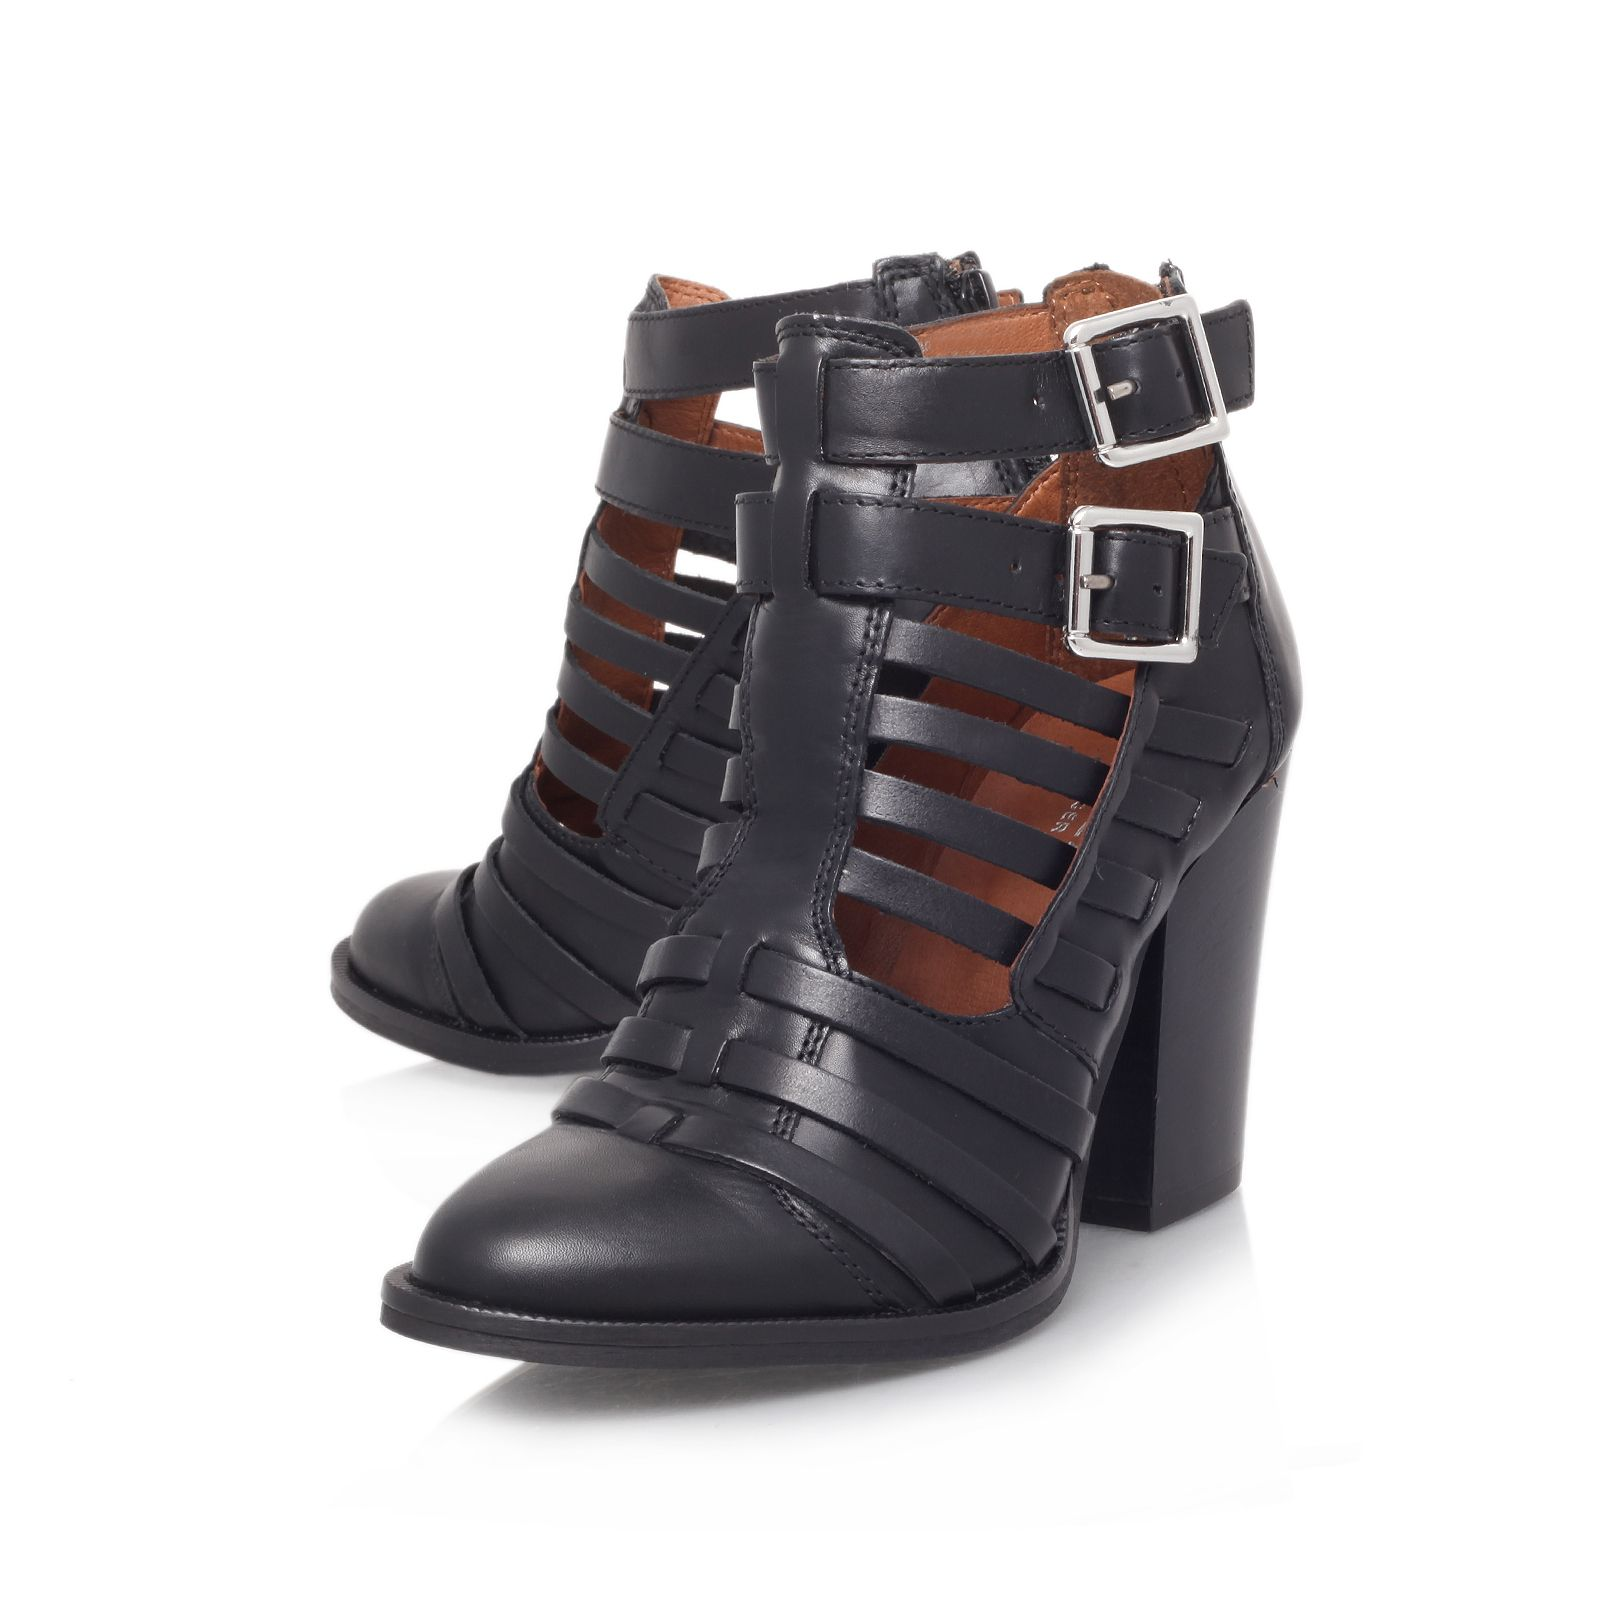 Silent high heel ankle boots